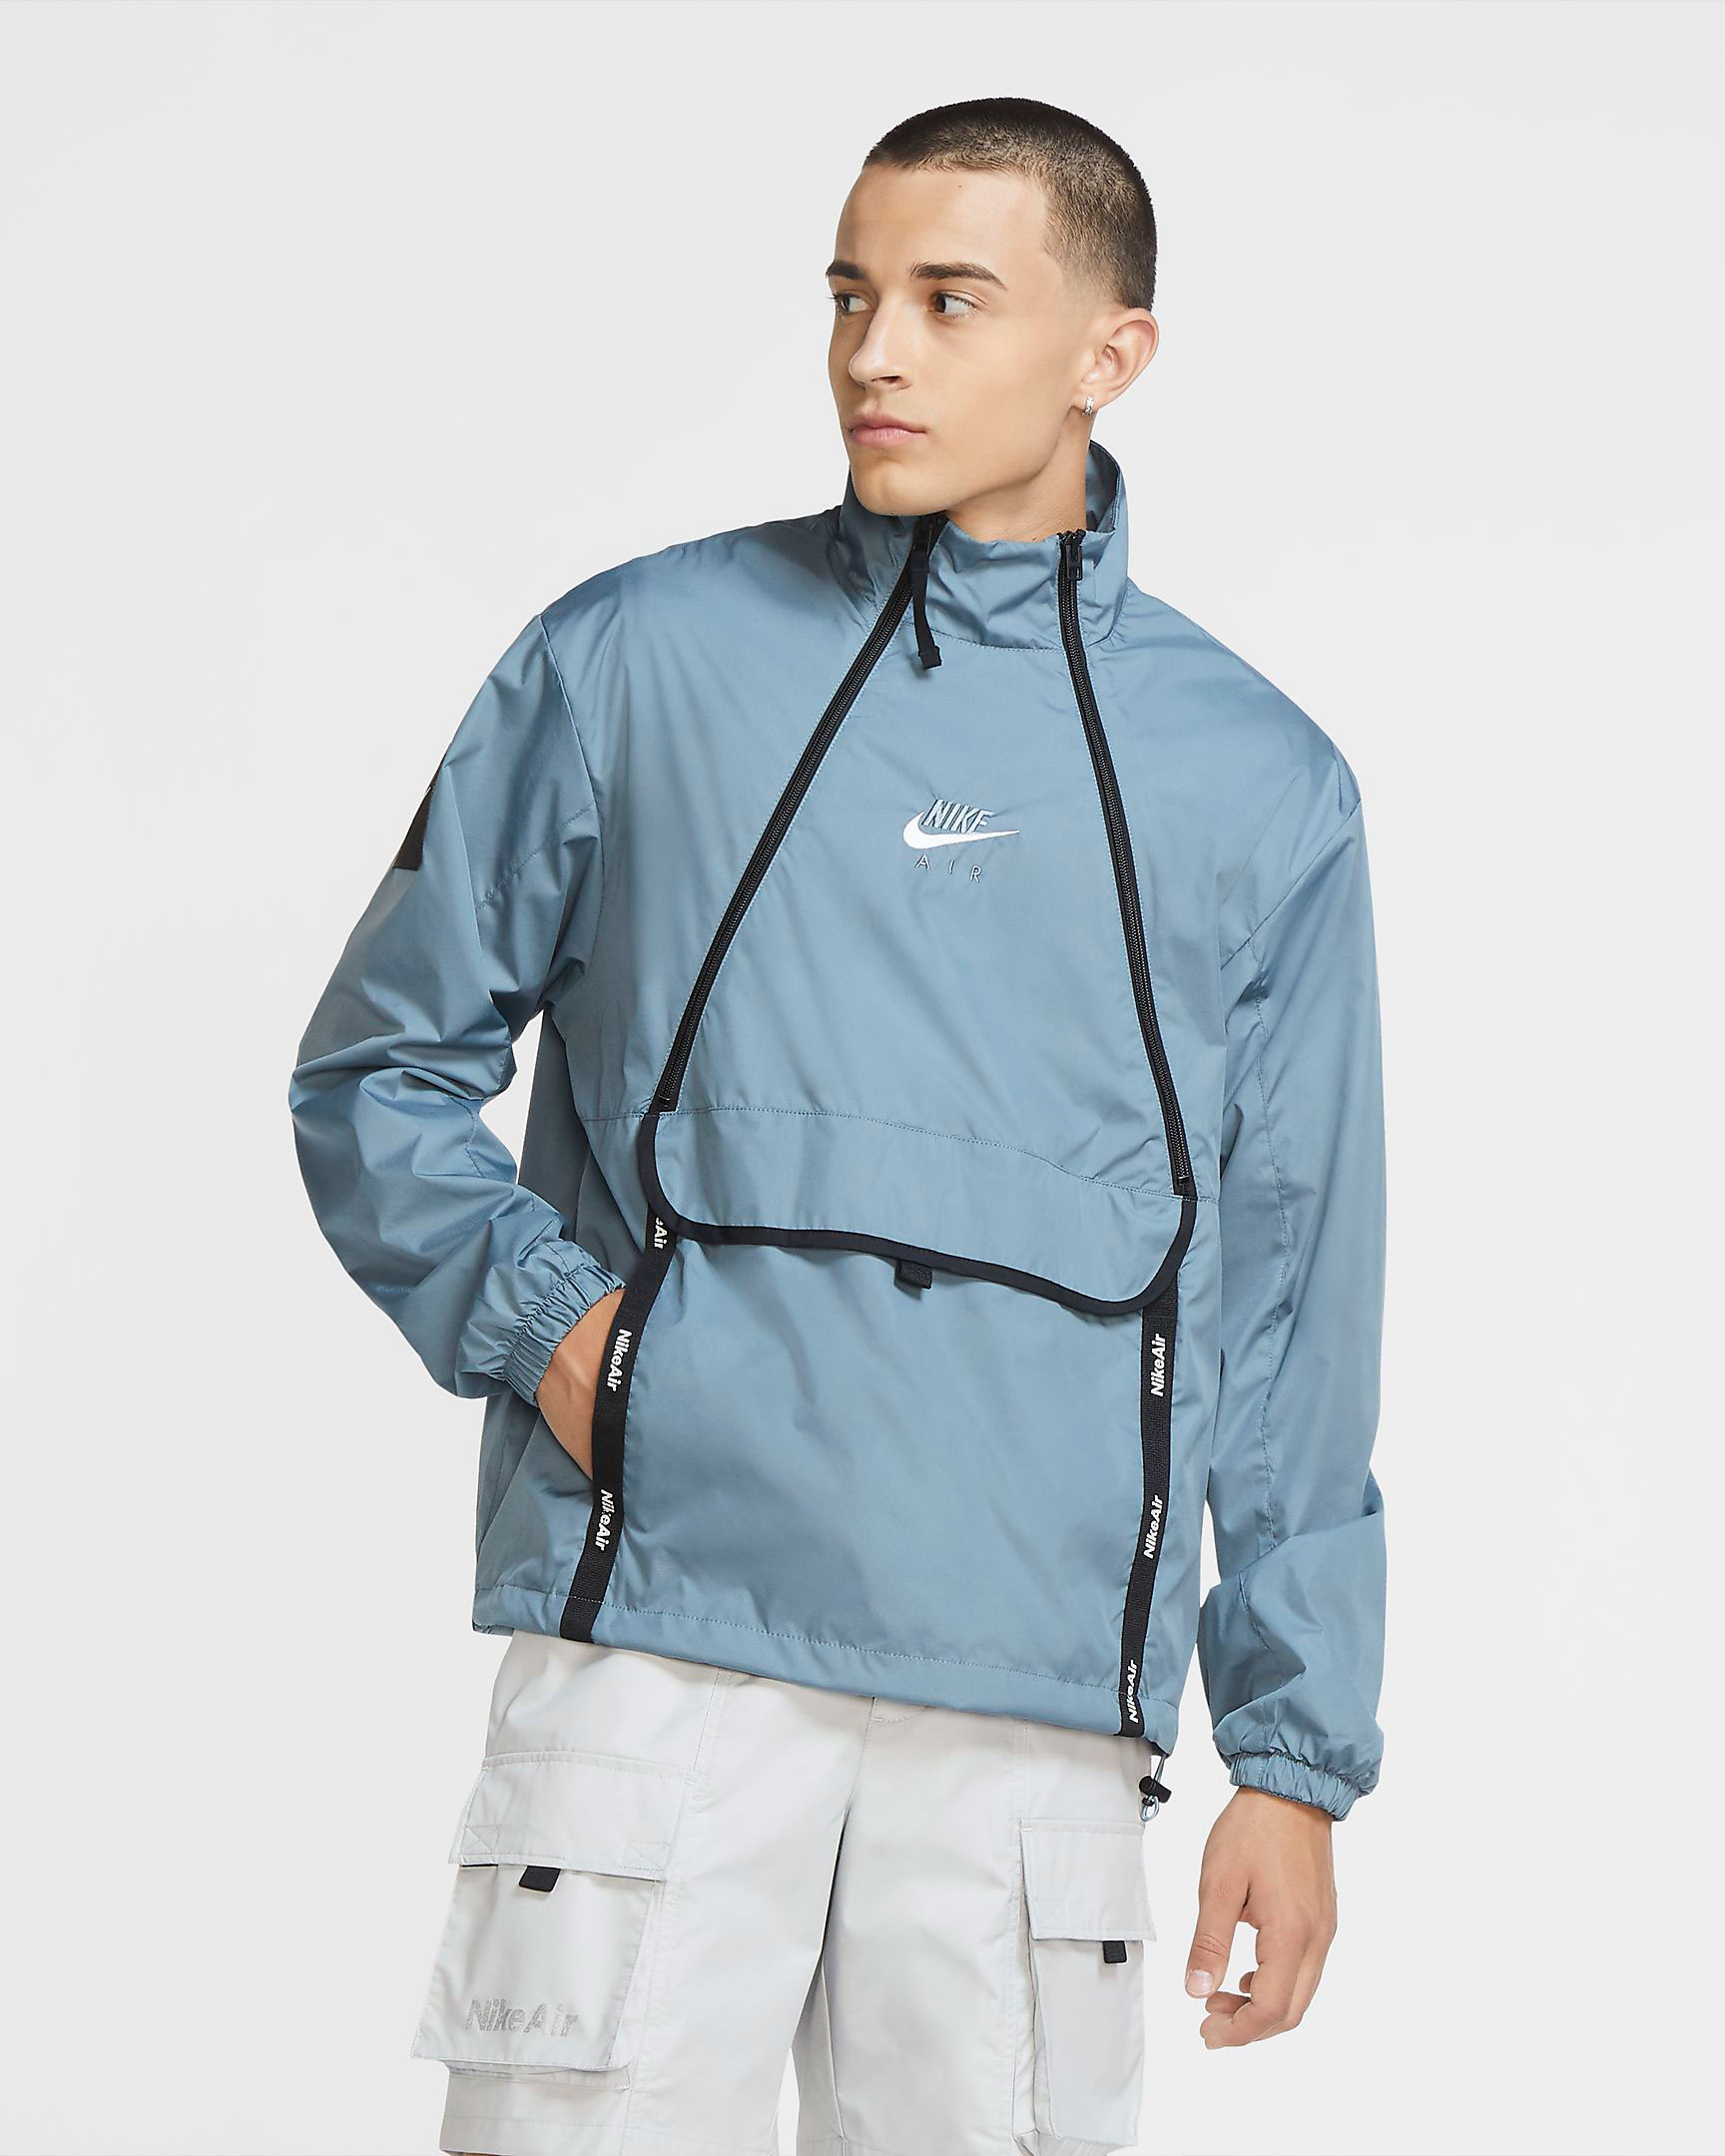 nike-air-utility-reflective-jacket-blue-1